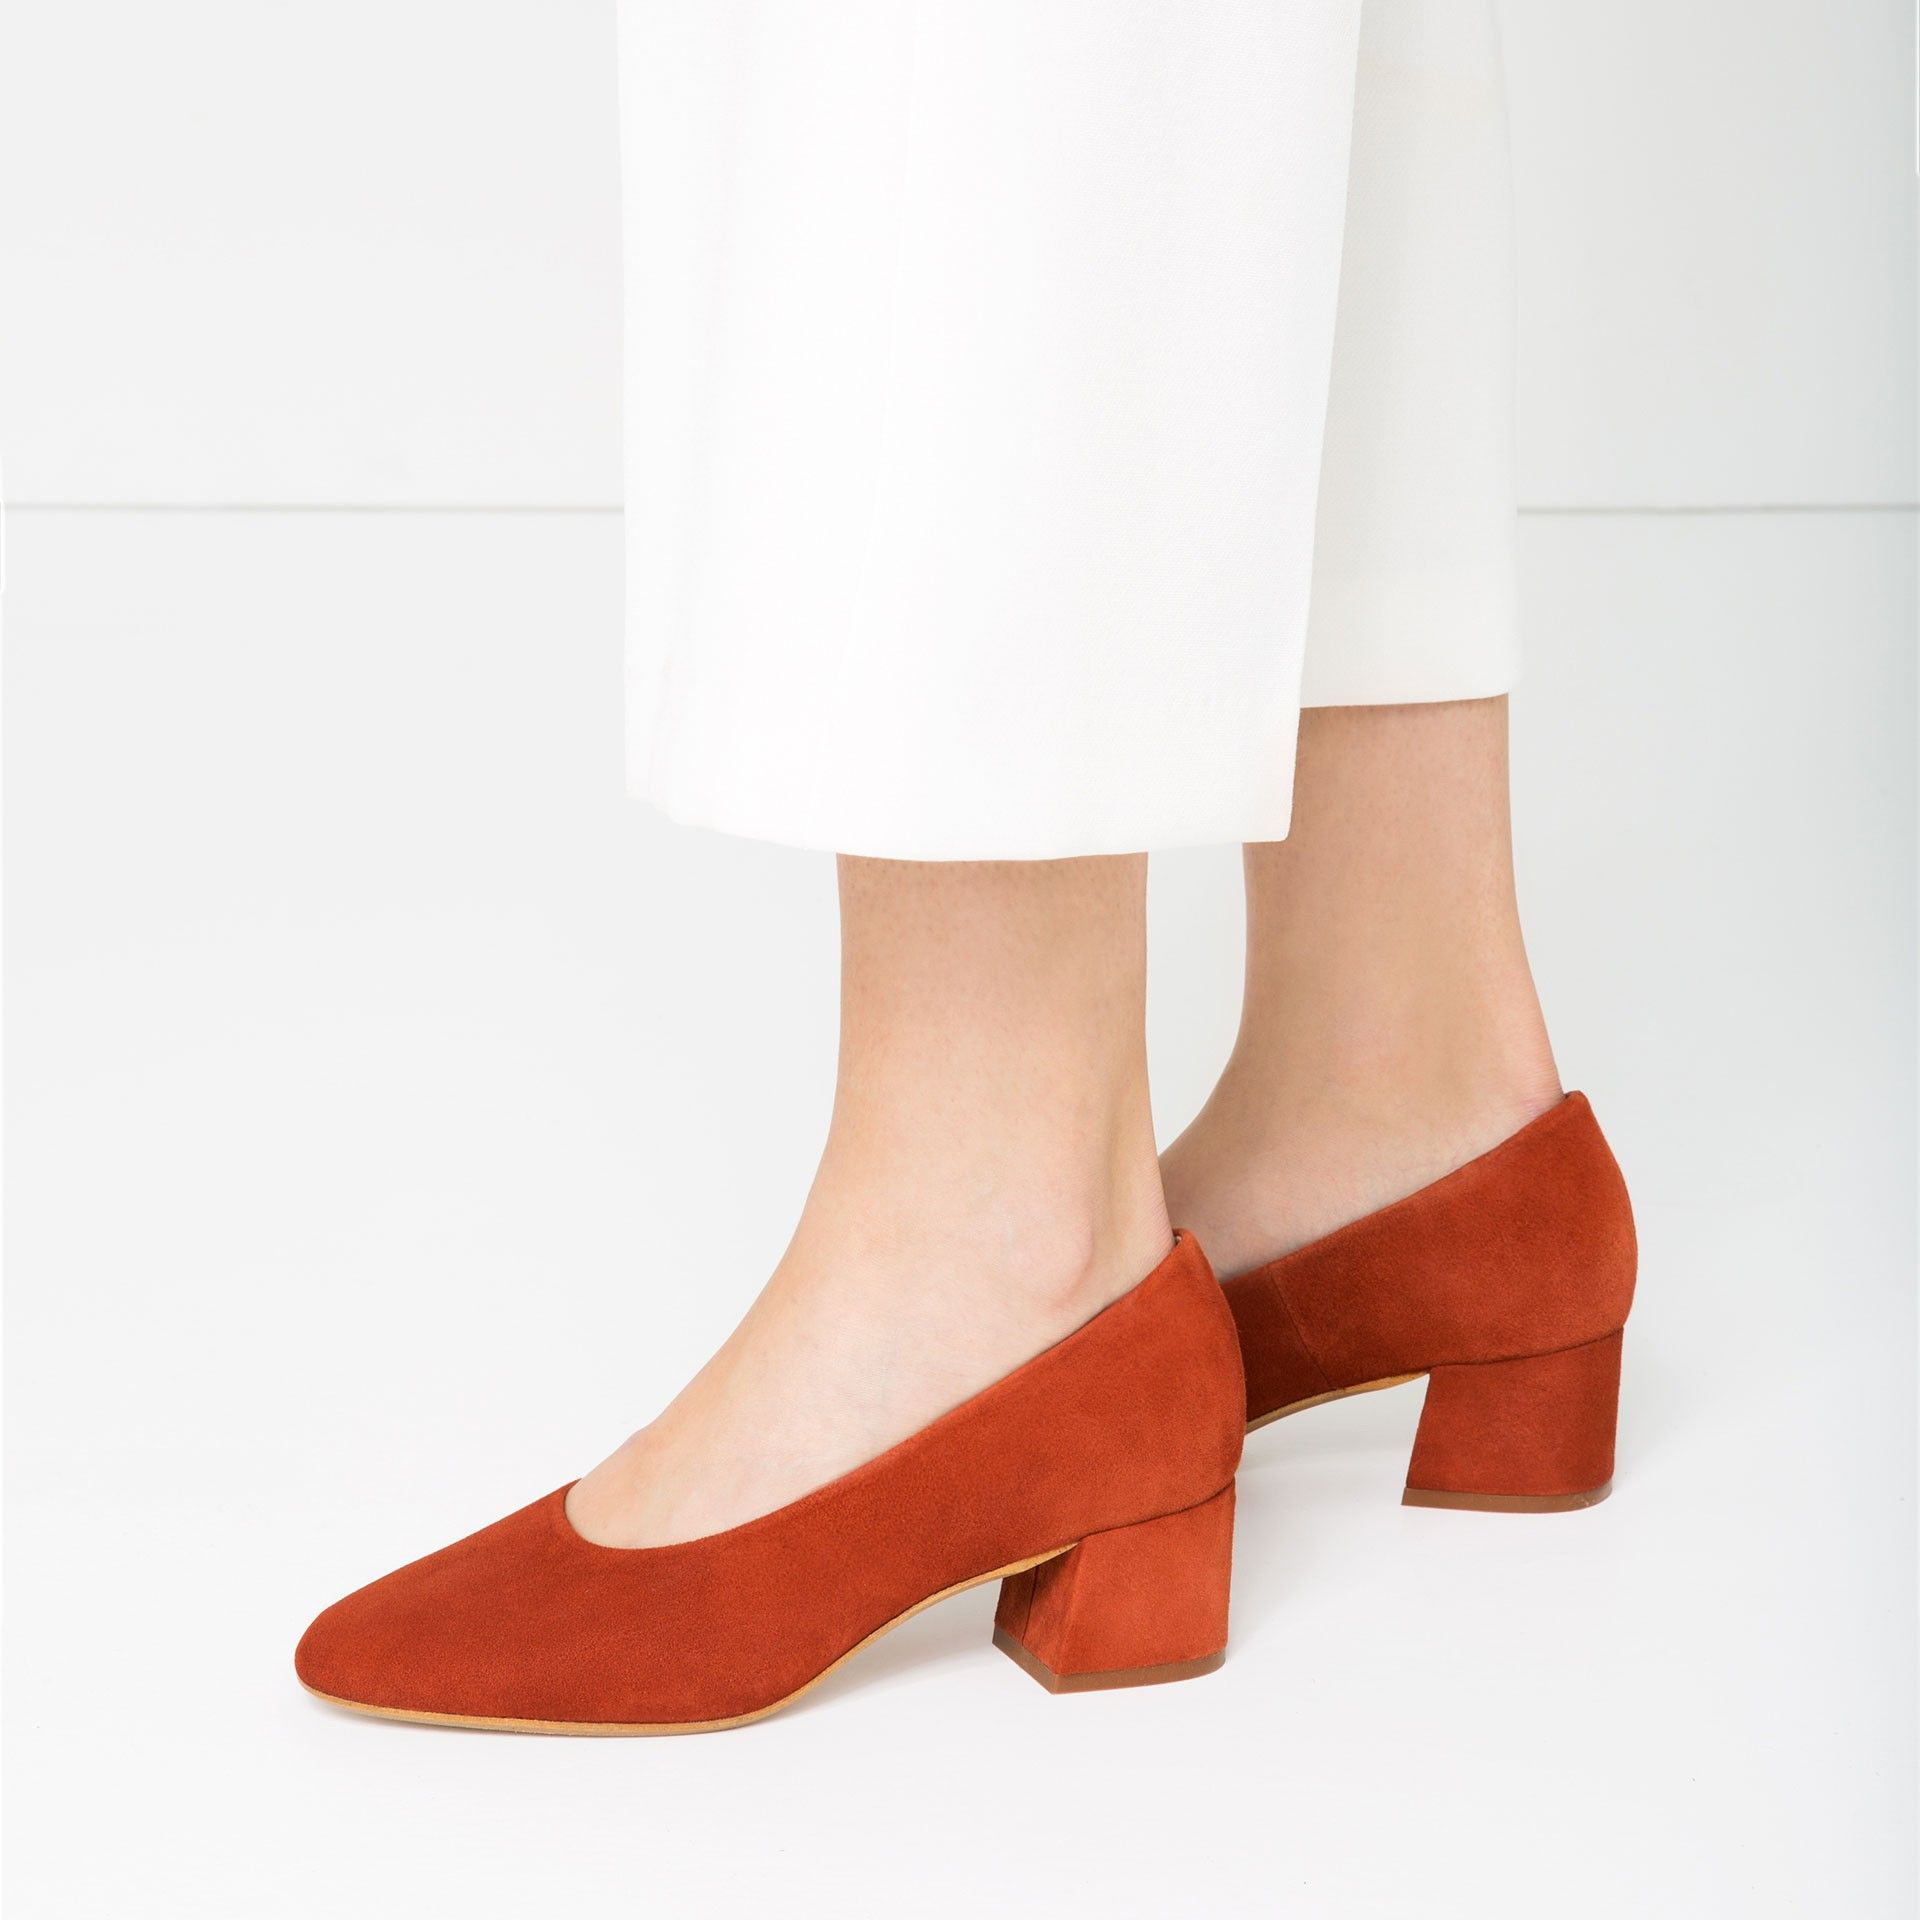 Pinterest Unstoppable Shoes Zara Why Officially Is Footwear nYxXqnBt4P 3540cd8adf62